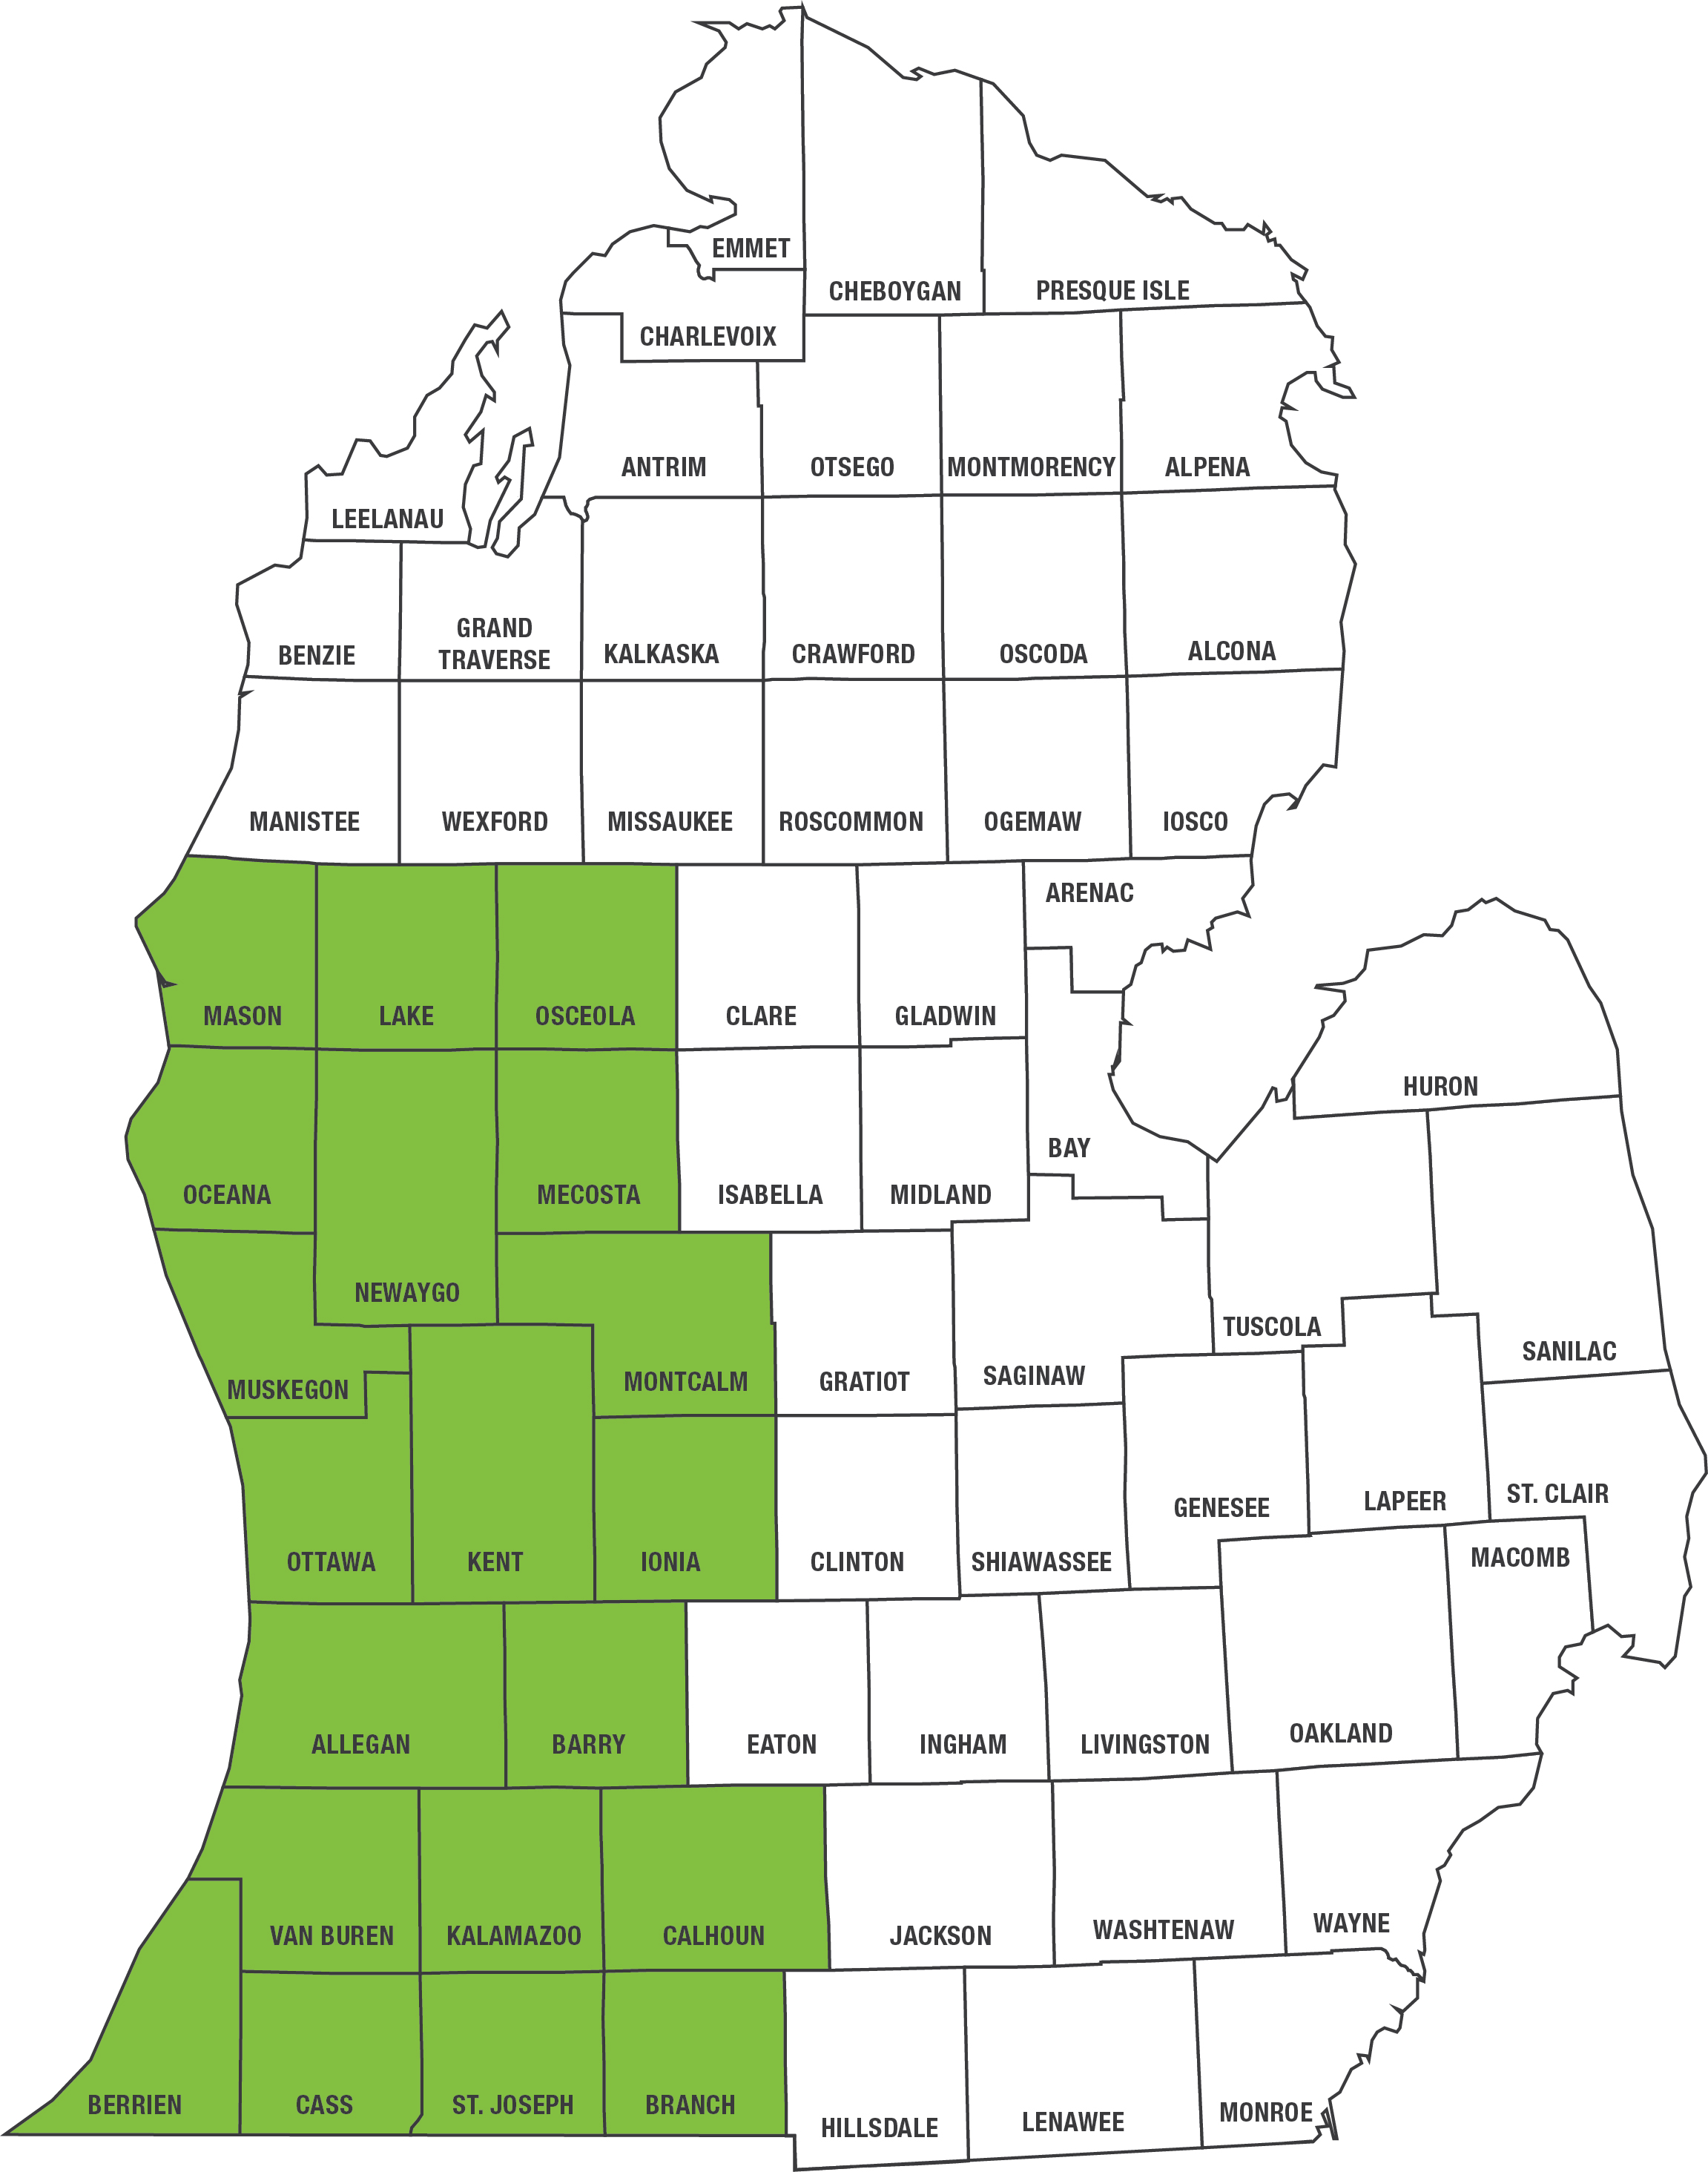 Medicaid, Healthy Michigan Plan and MIChild service area map